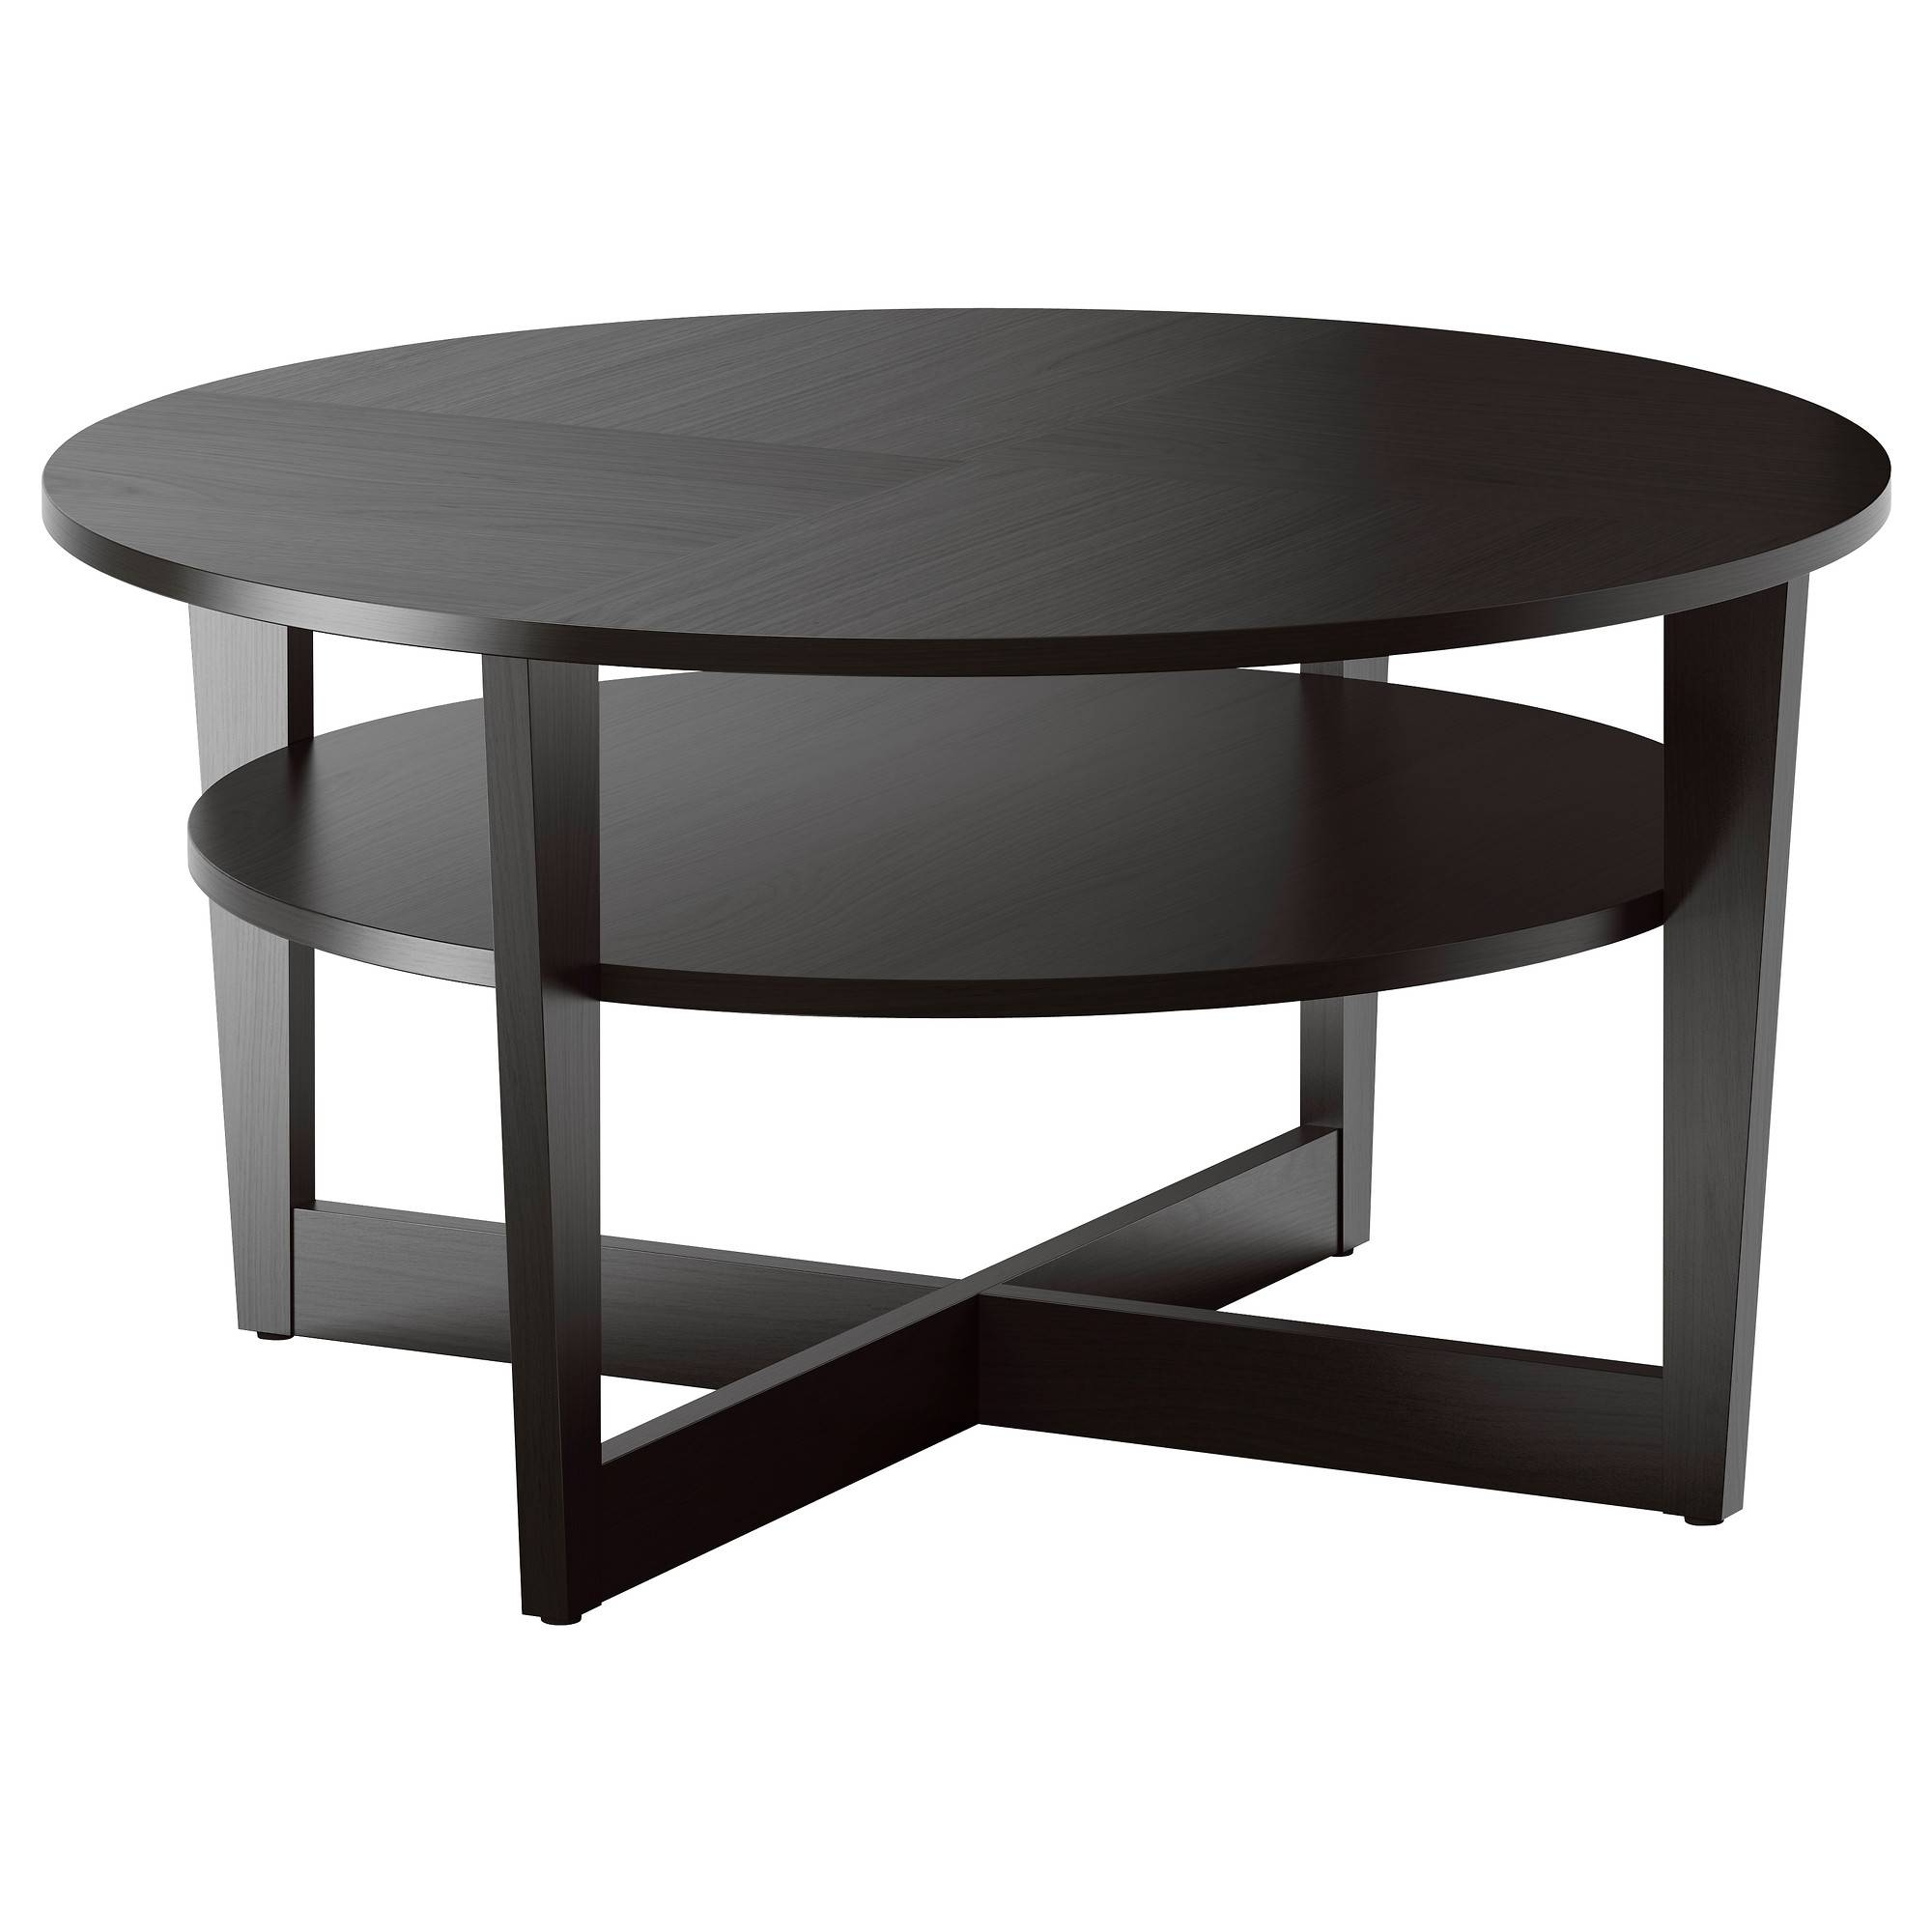 Coffee Tables & Side Tables - Ikea throughout Dark Coffee Tables (Image 11 of 30)